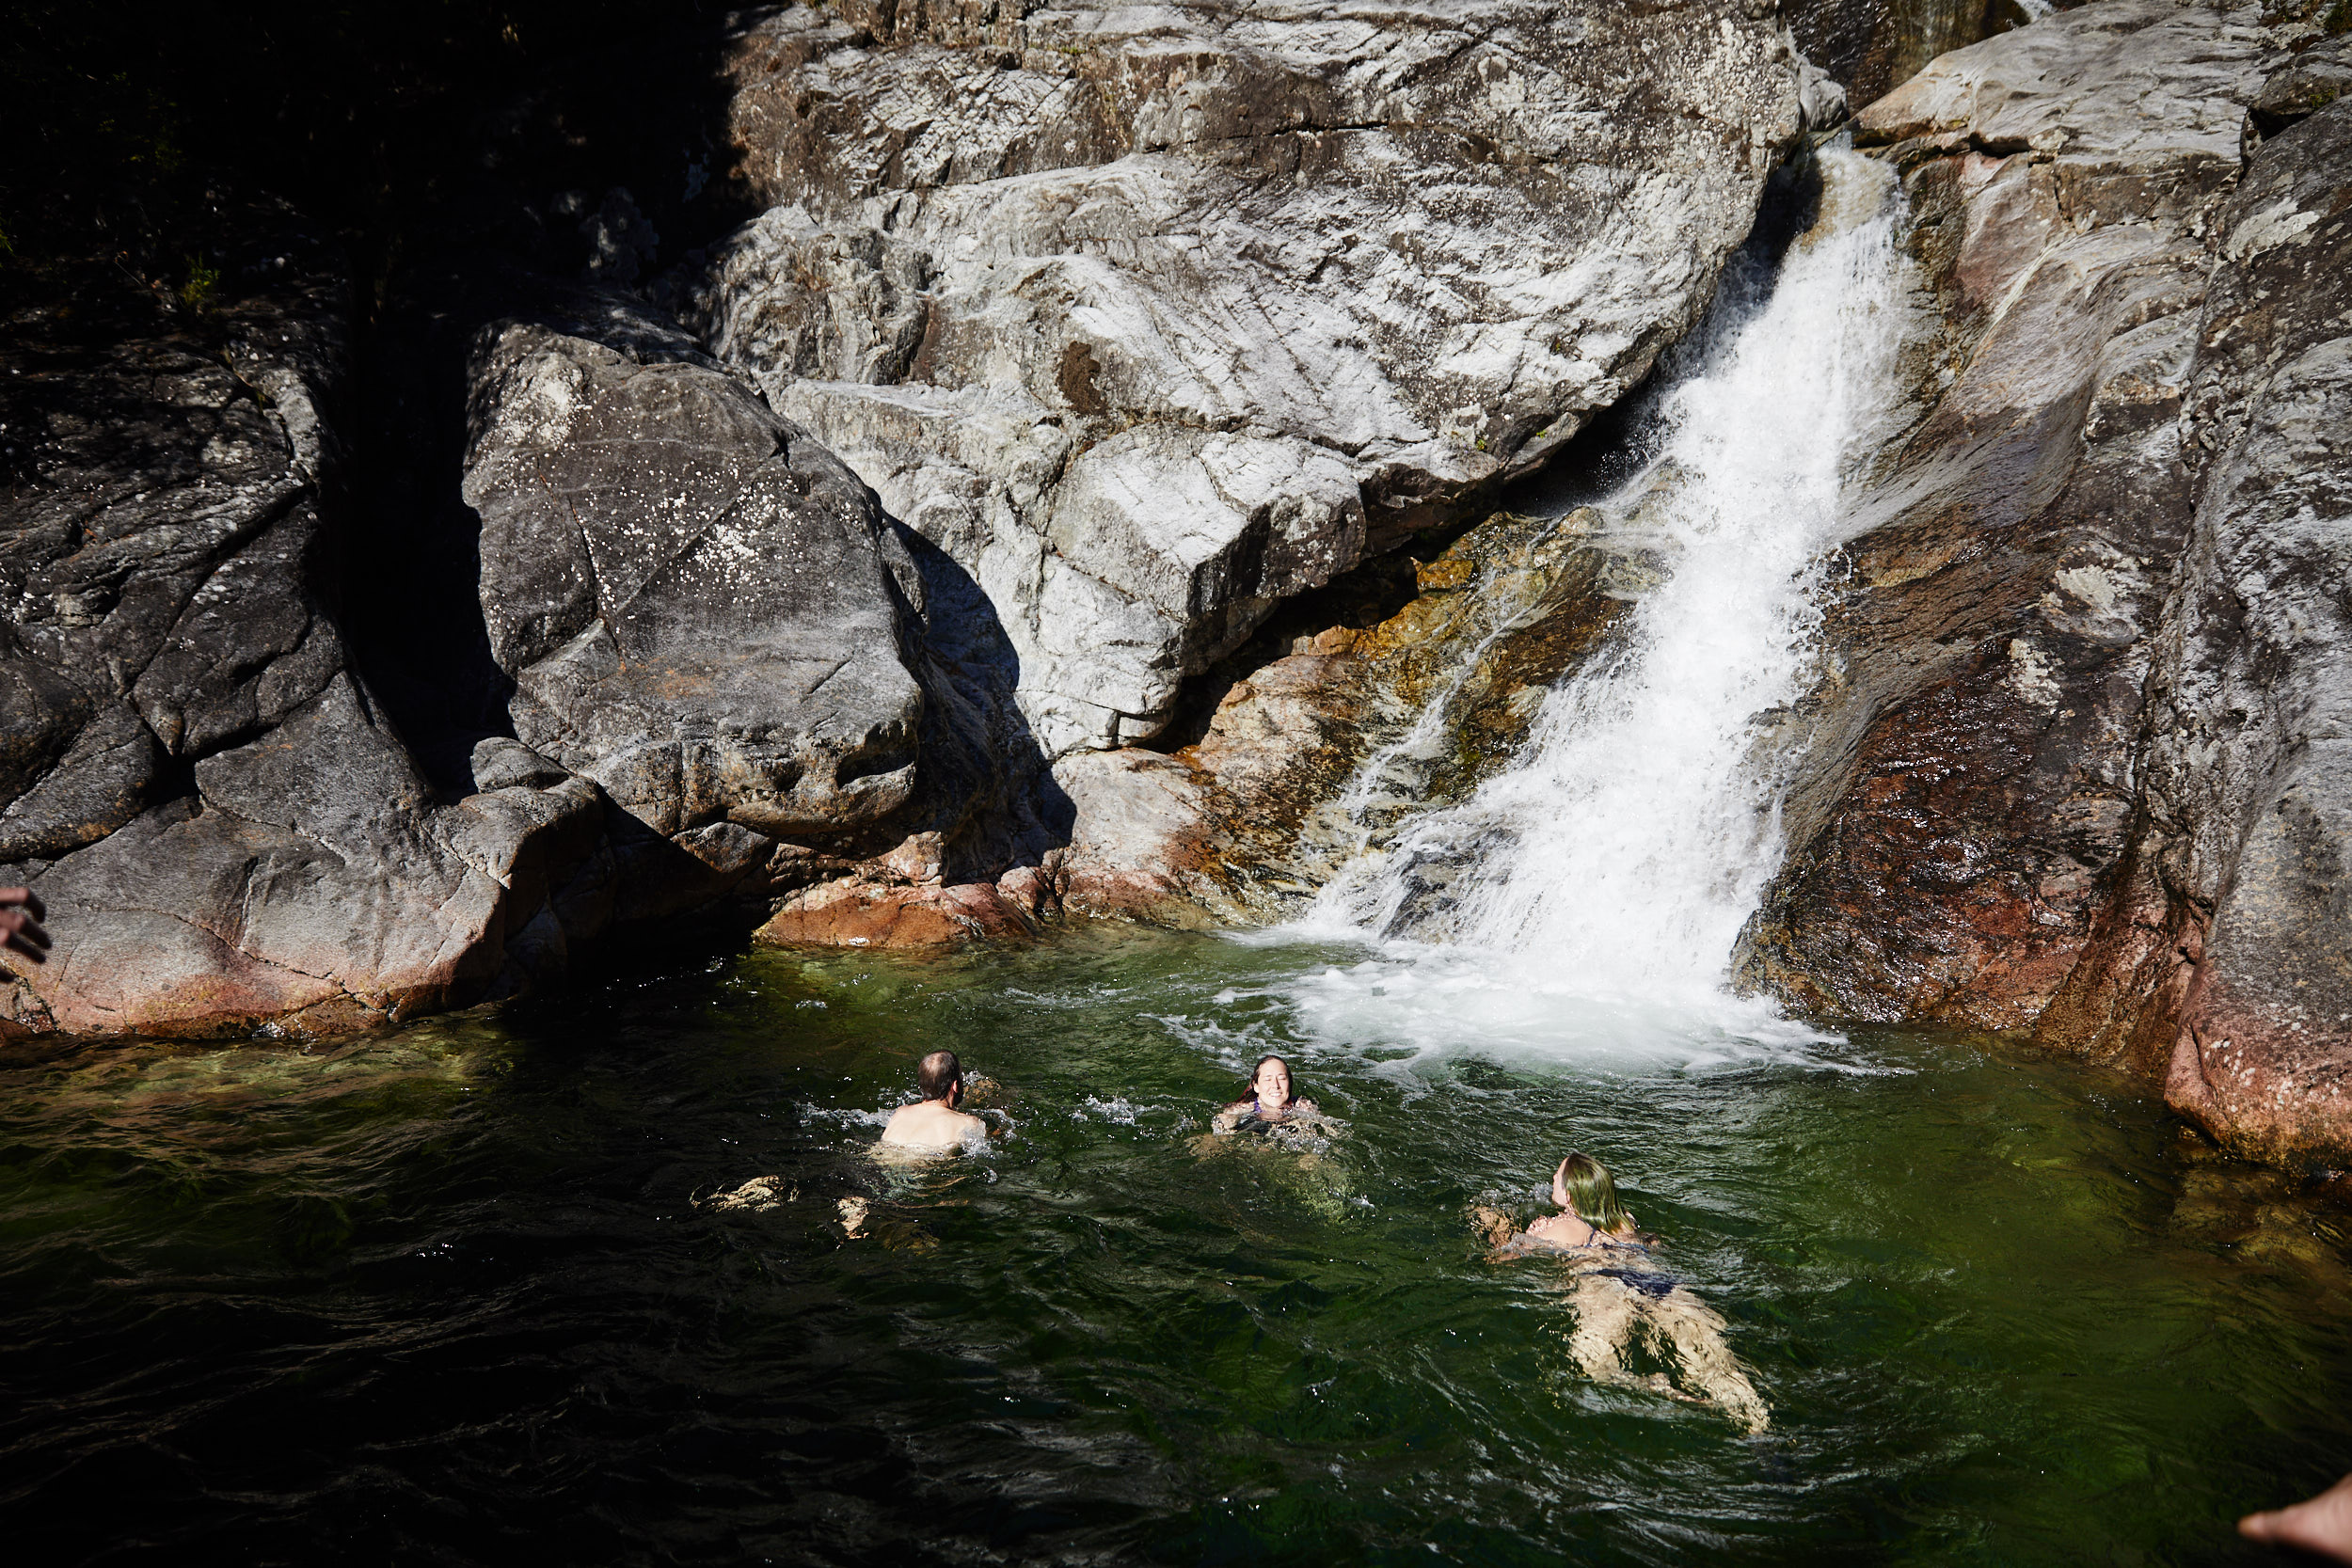 Near the top of the falls is hidden swimming area that had a few things you could jump off of into the deep waters.